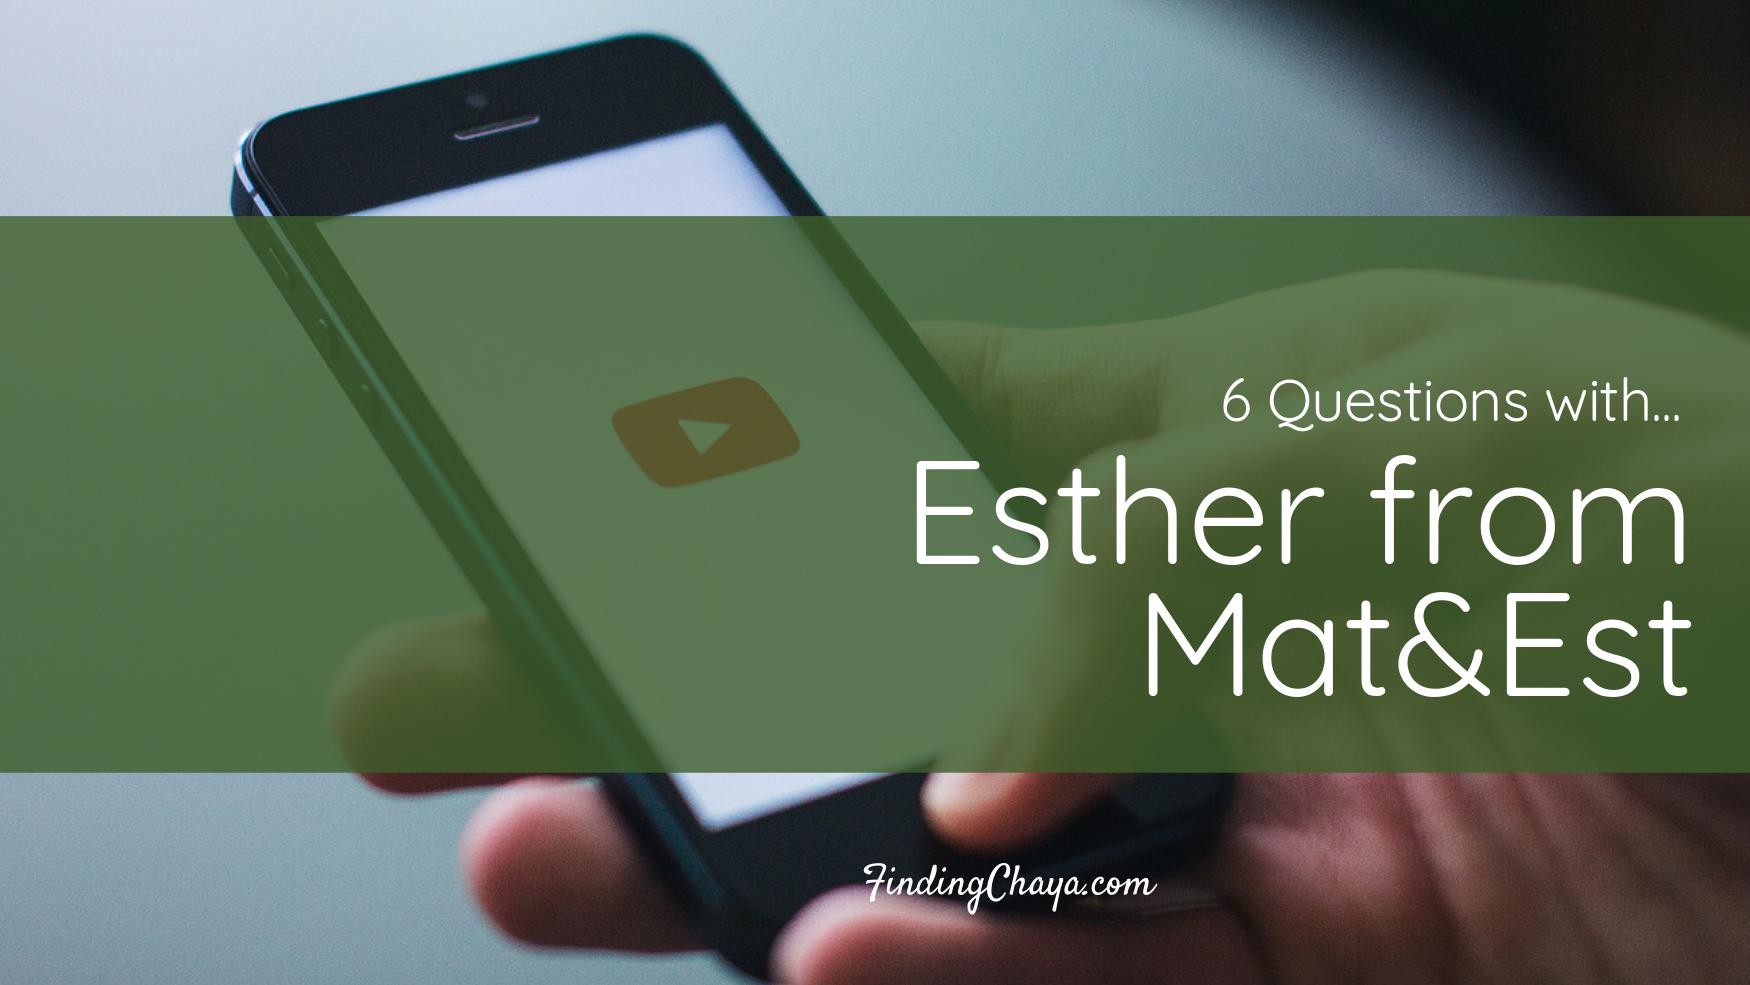 6 Questions with Esther from Mat&Est